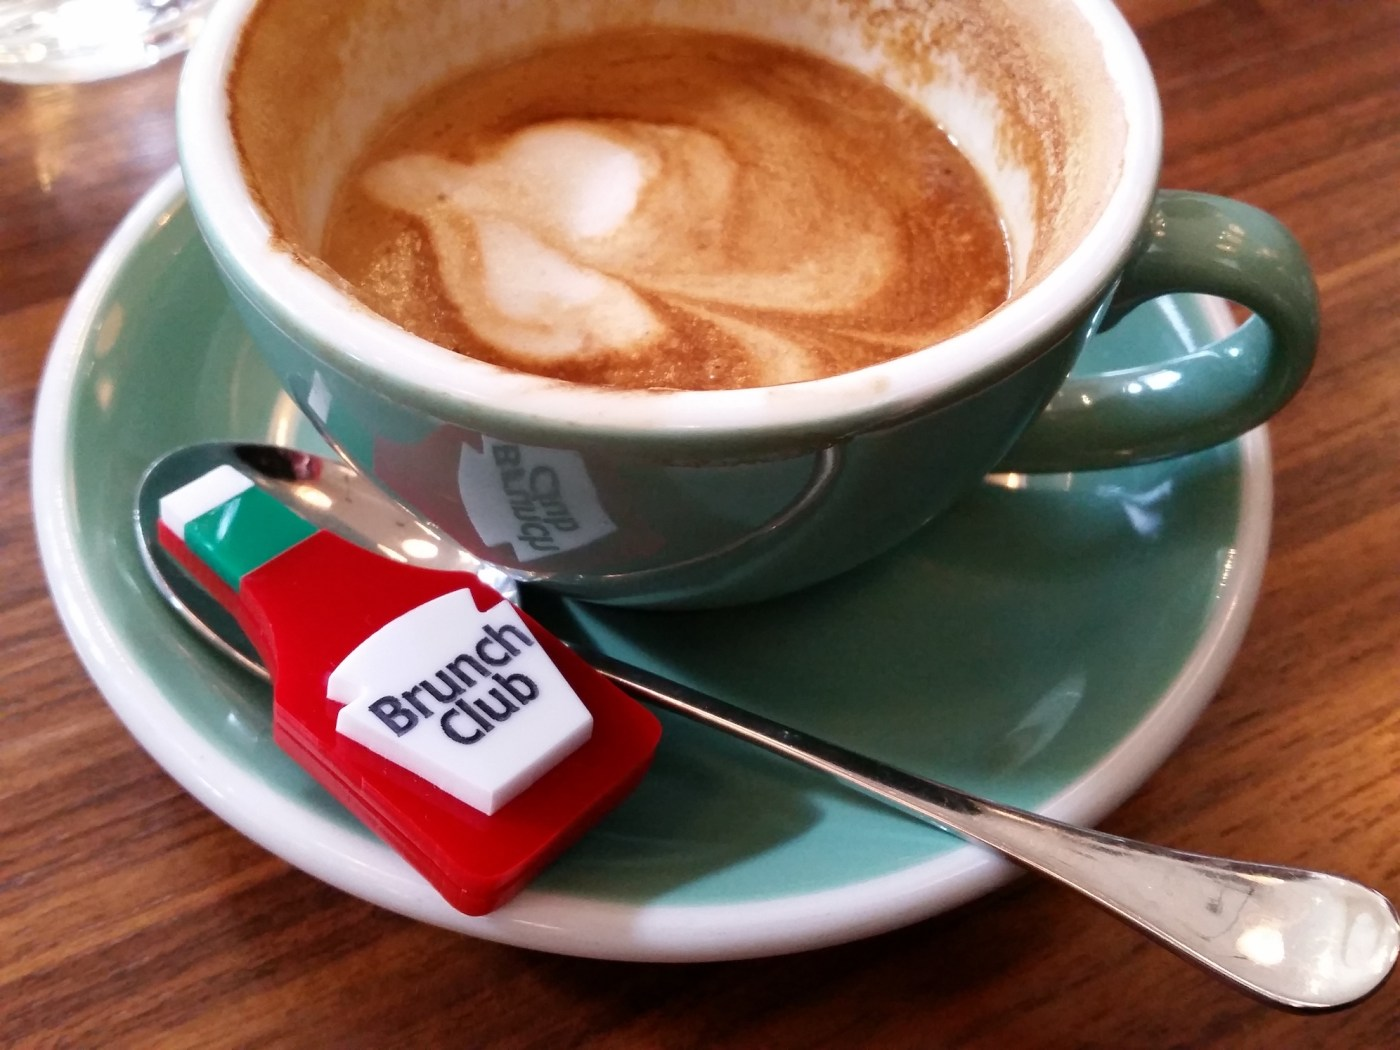 BrunchClub, custom badge and soya latte